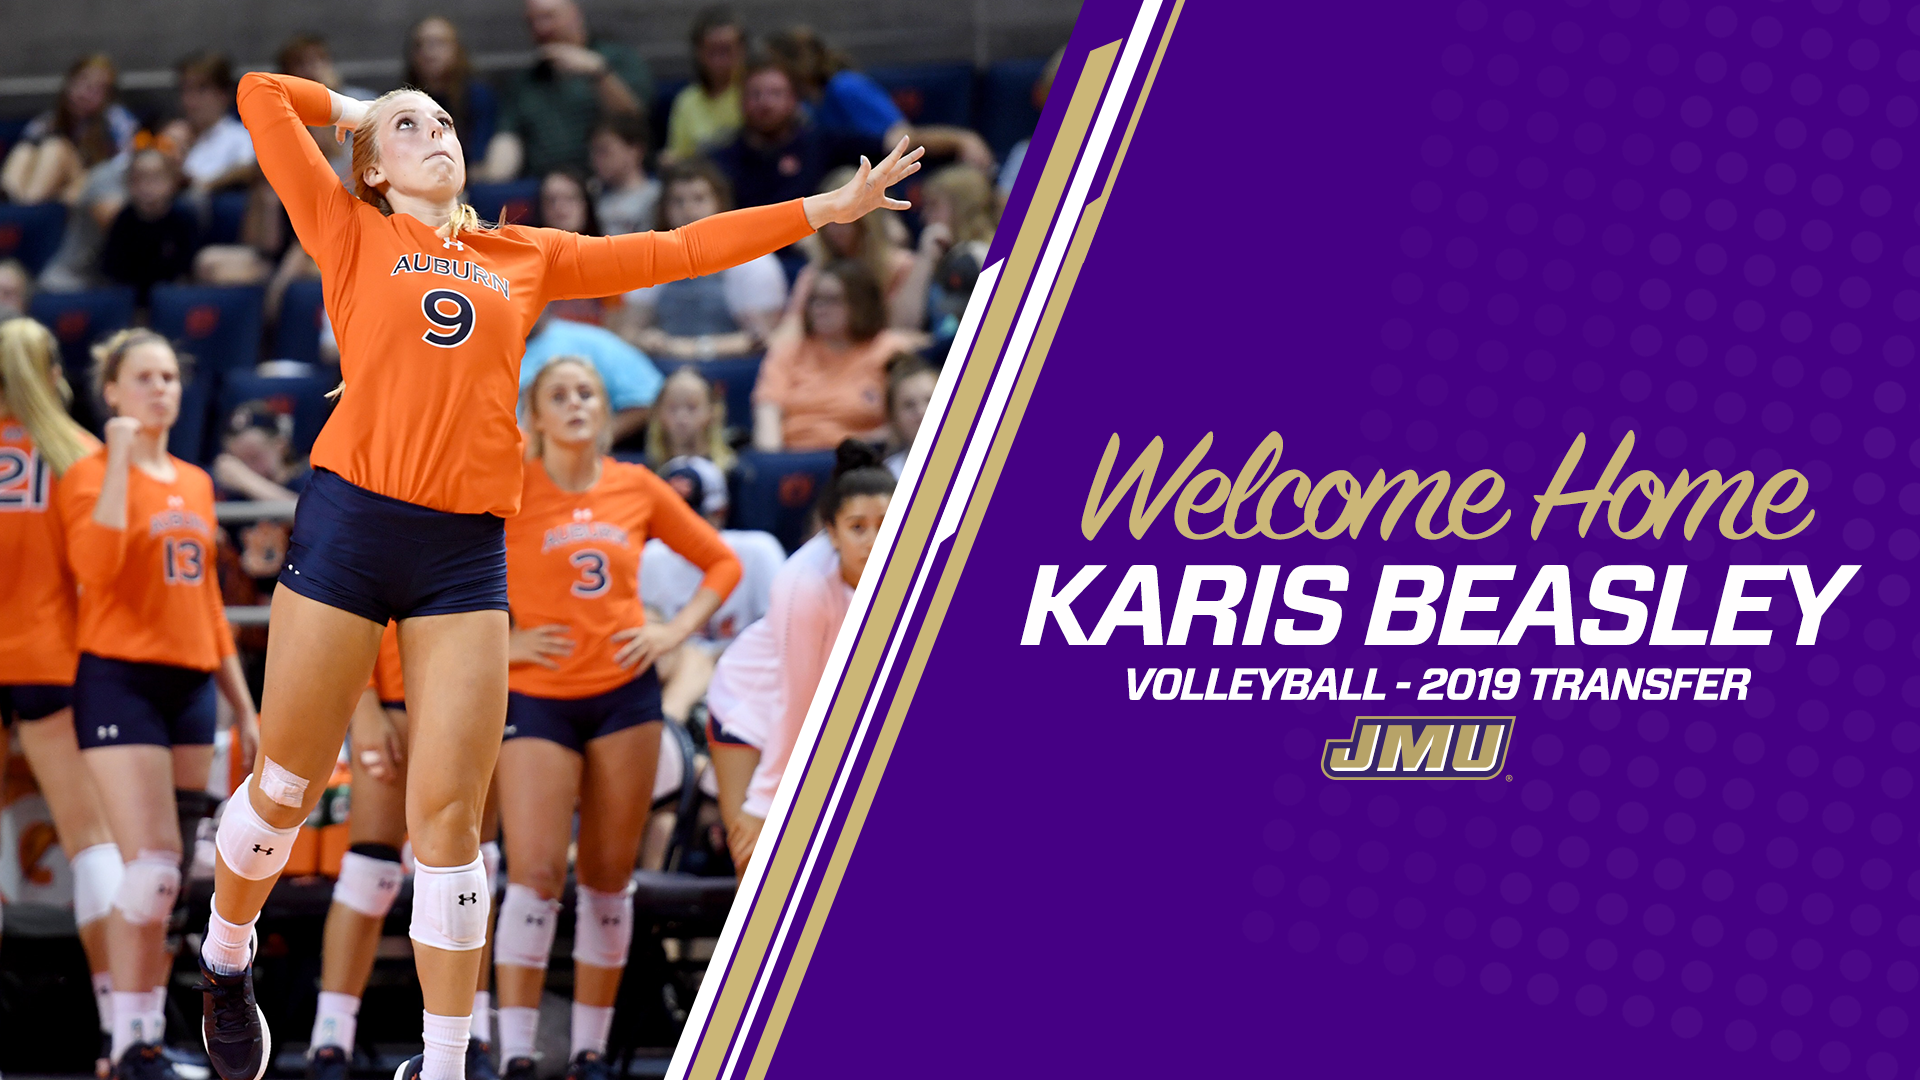 Volleyball: Beasley Joins Volleyball for 2019 Campaign